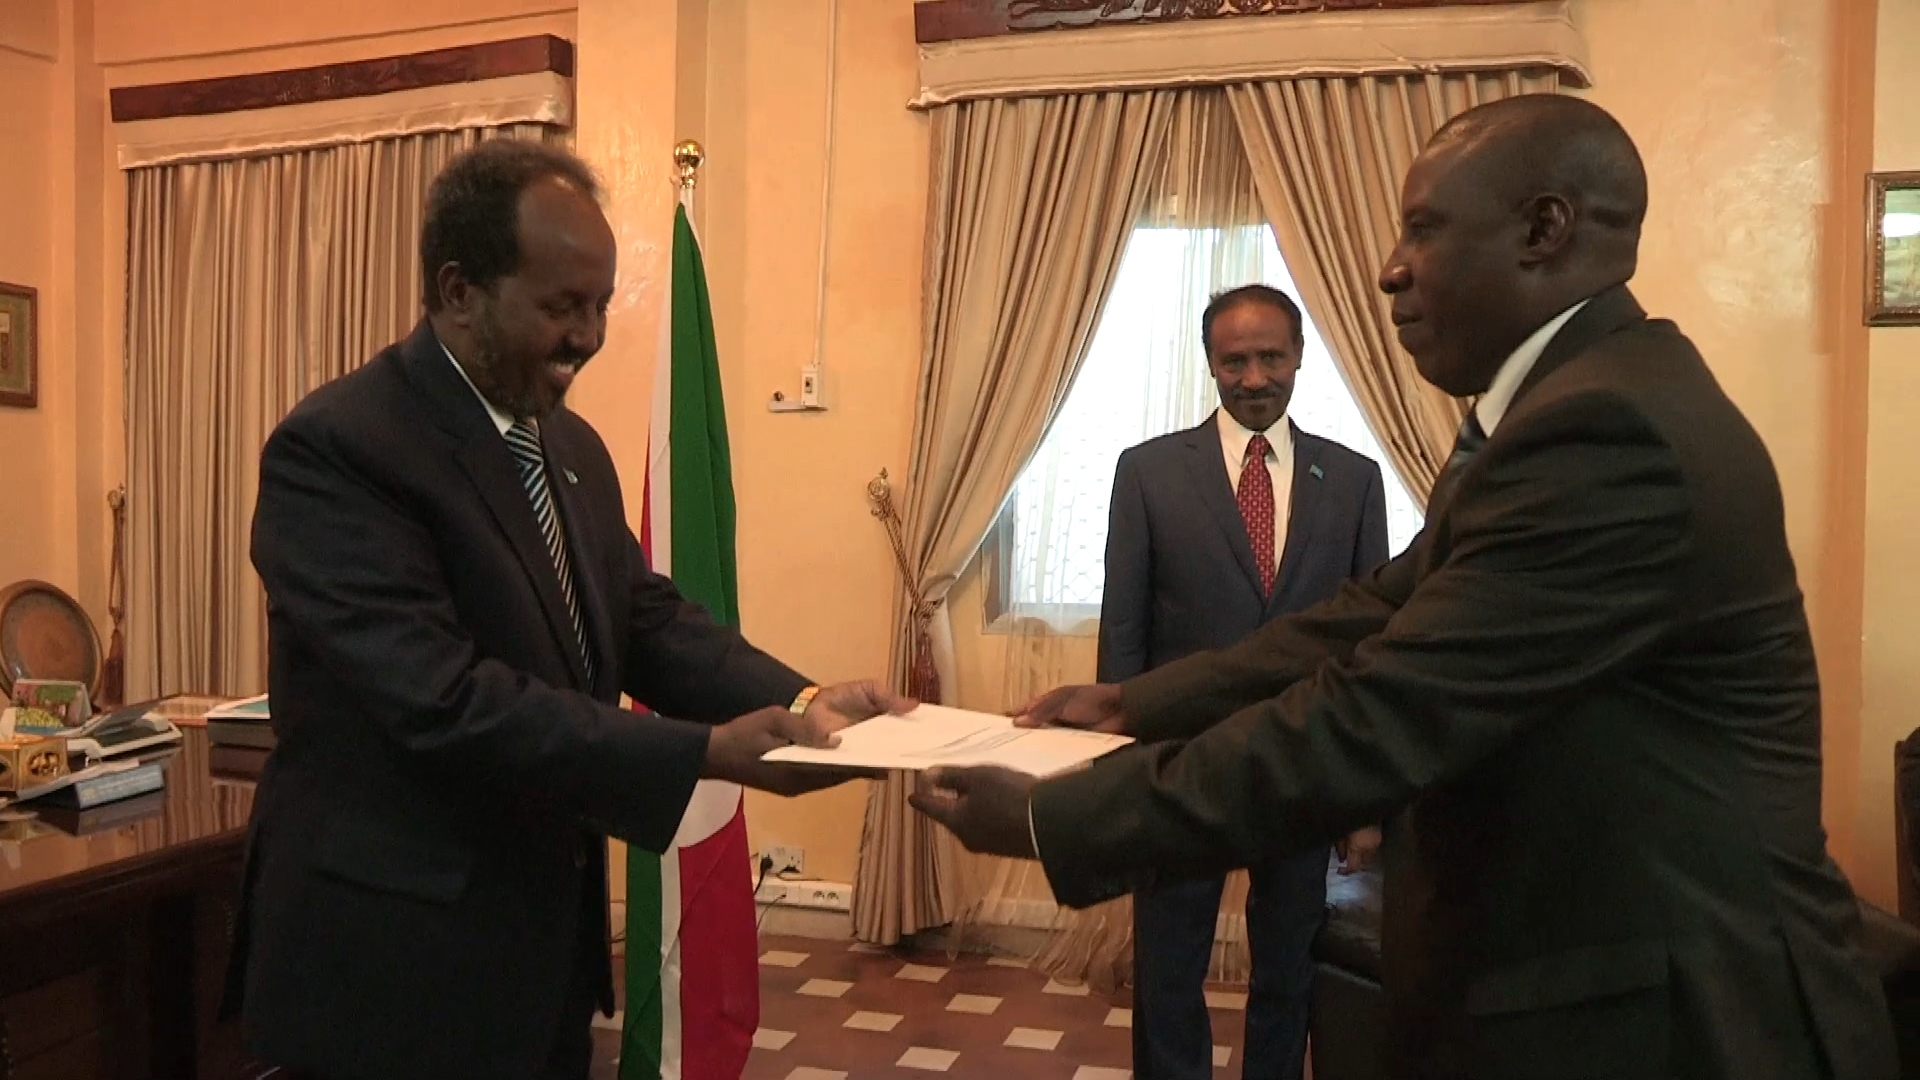 Selected frame from video story SOMALIA / BURUNDI AMBASSADOR